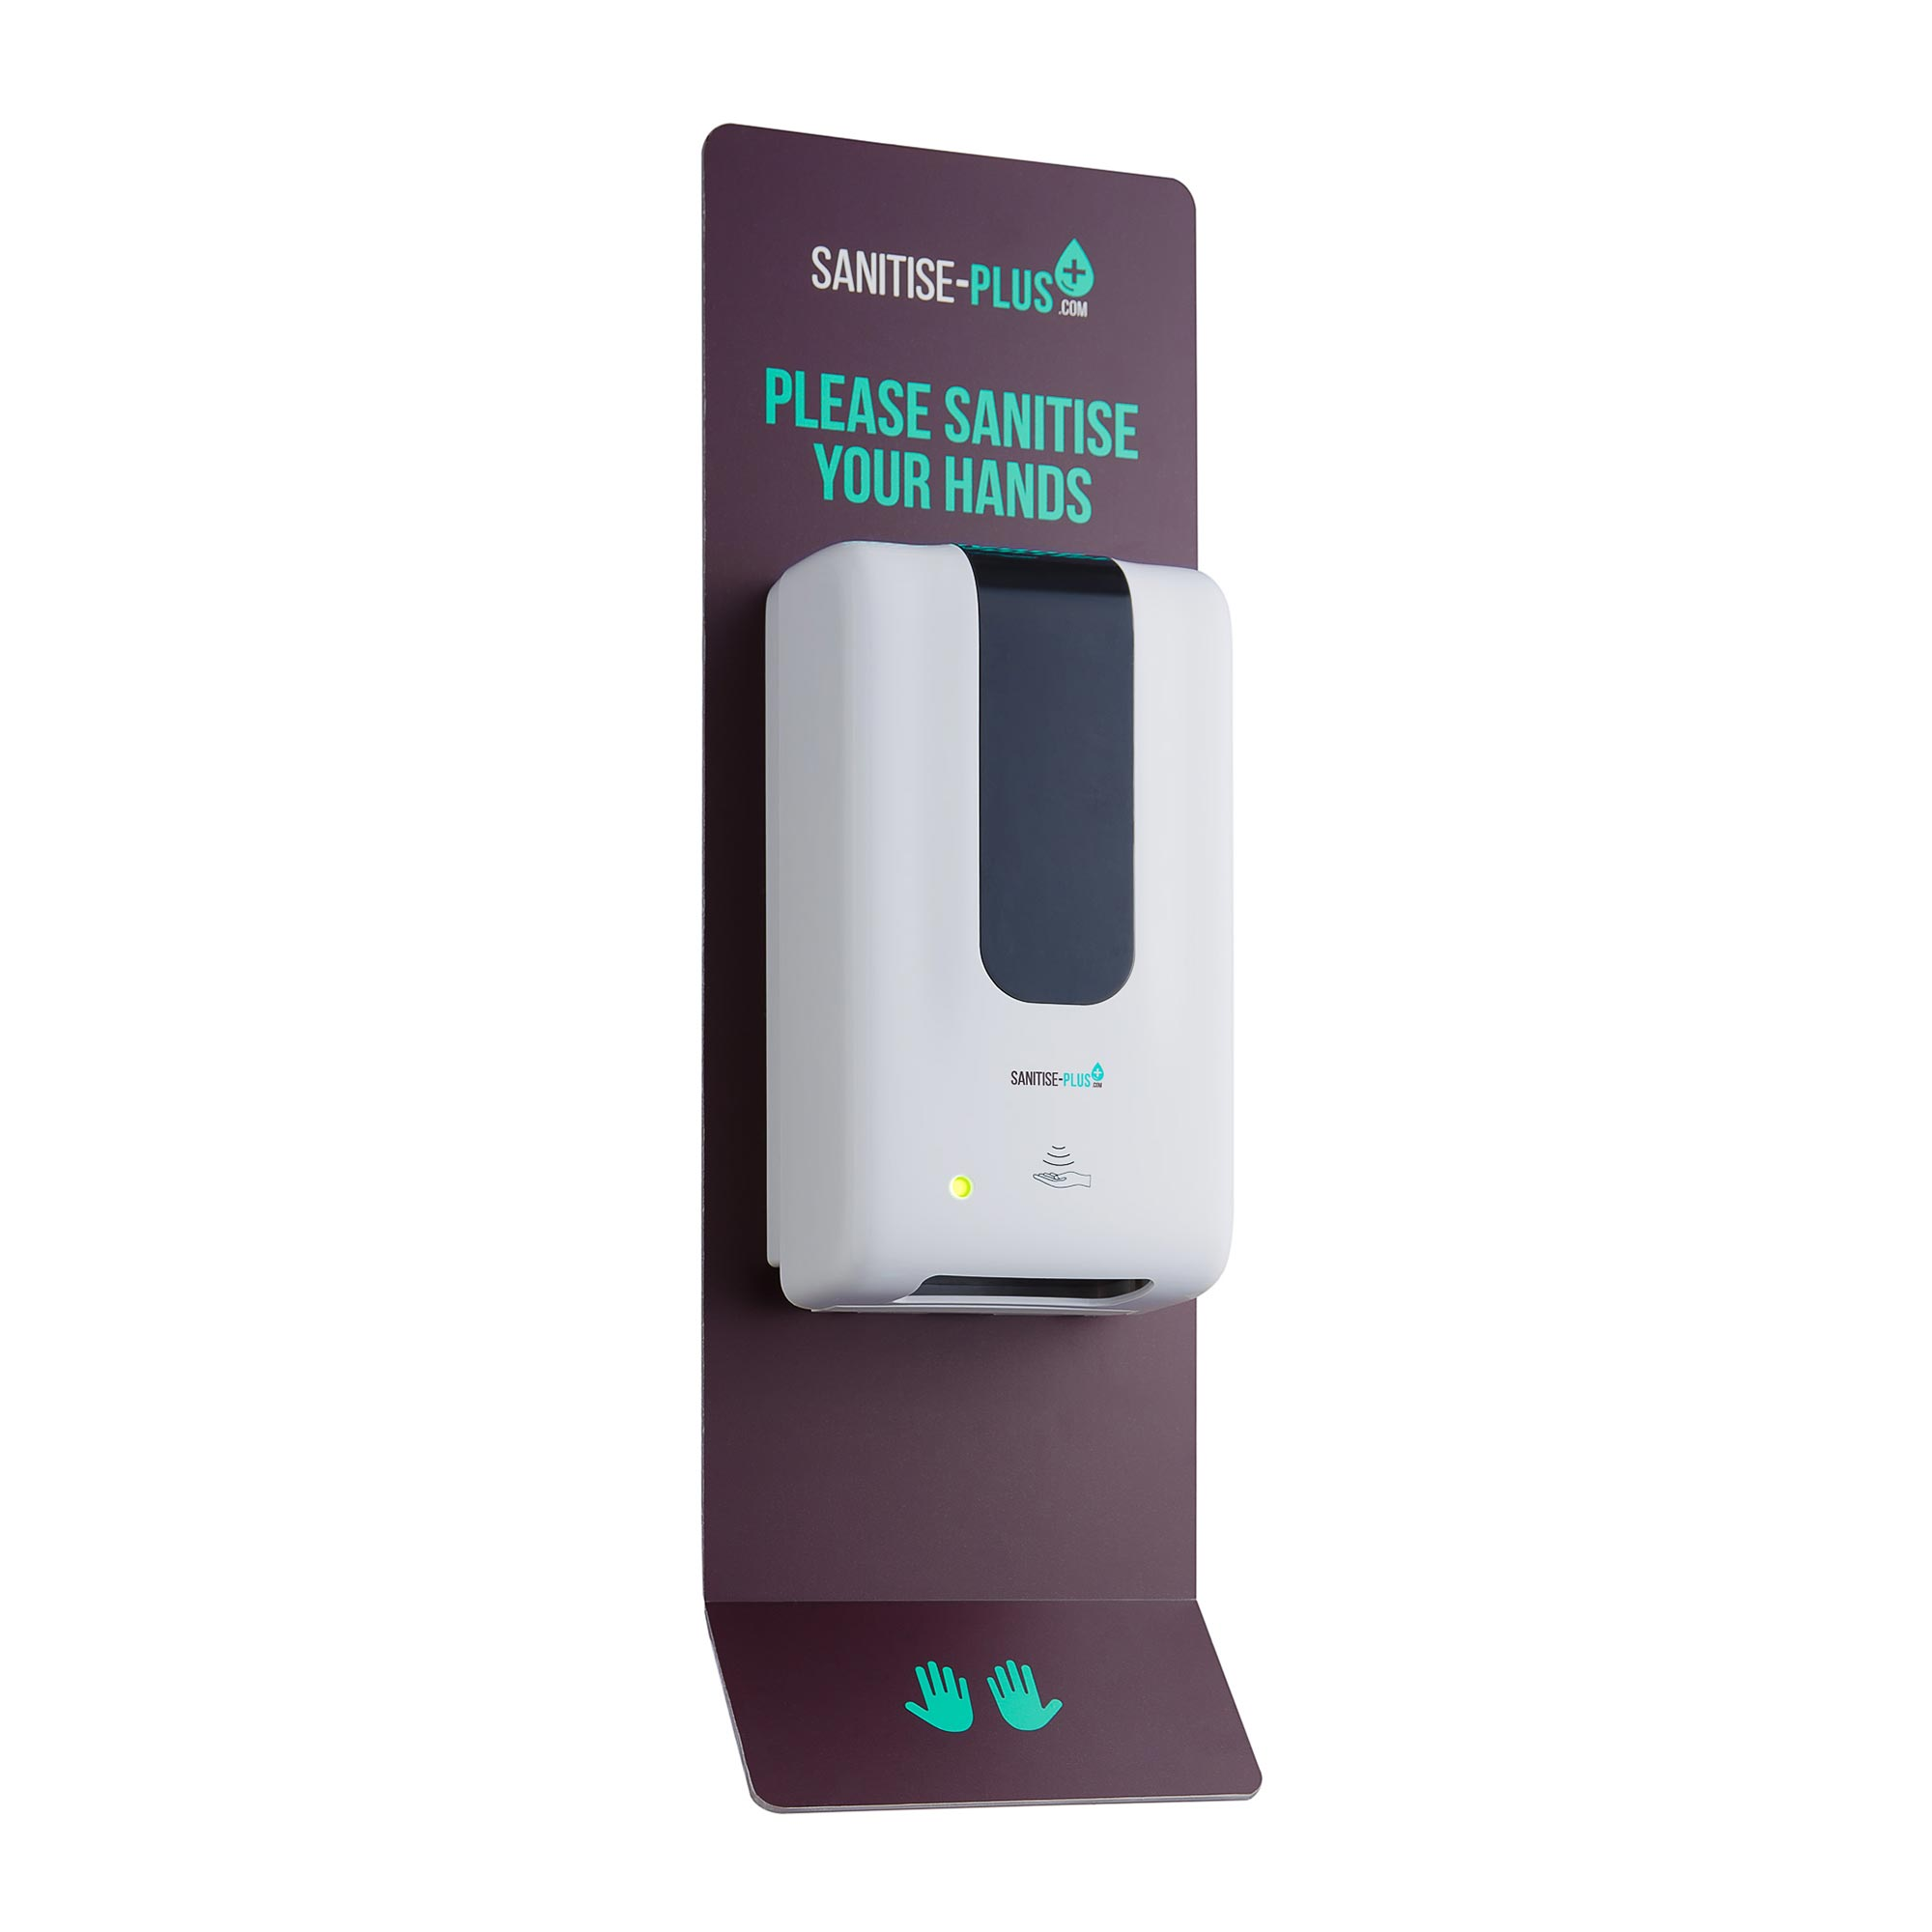 Design 2 - SANITISE PLUS - WALL-MOUNTED AUTOMATIC SANITISING STATION - TOUCH FREE